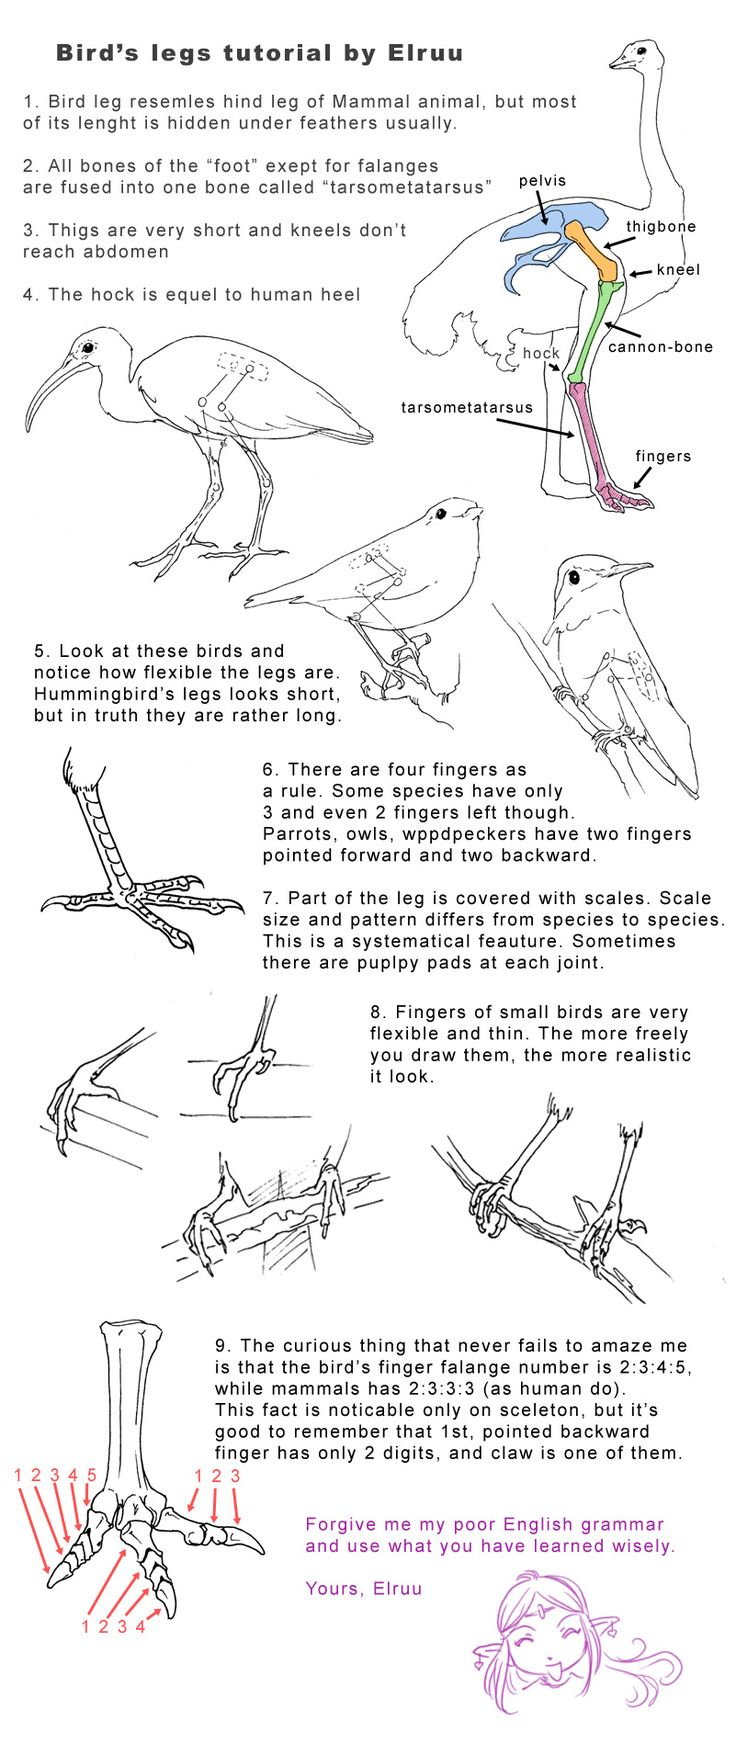 Bird legs tutorial by Elruu.deviantart.com on @deviantART   ★    CHARACTER DESIGN REFERENCES (www.facebook.com/CharacterDesignReferences & pinterest.com/characterdesigh) • Love Character Design? Join the Character Design Challenge (link→ www.facebook.com/groups/CharacterDesignChallenge) Share your unique vision of a theme every month, promote your art and make new friends in a community of over 25.000 artists!    ★